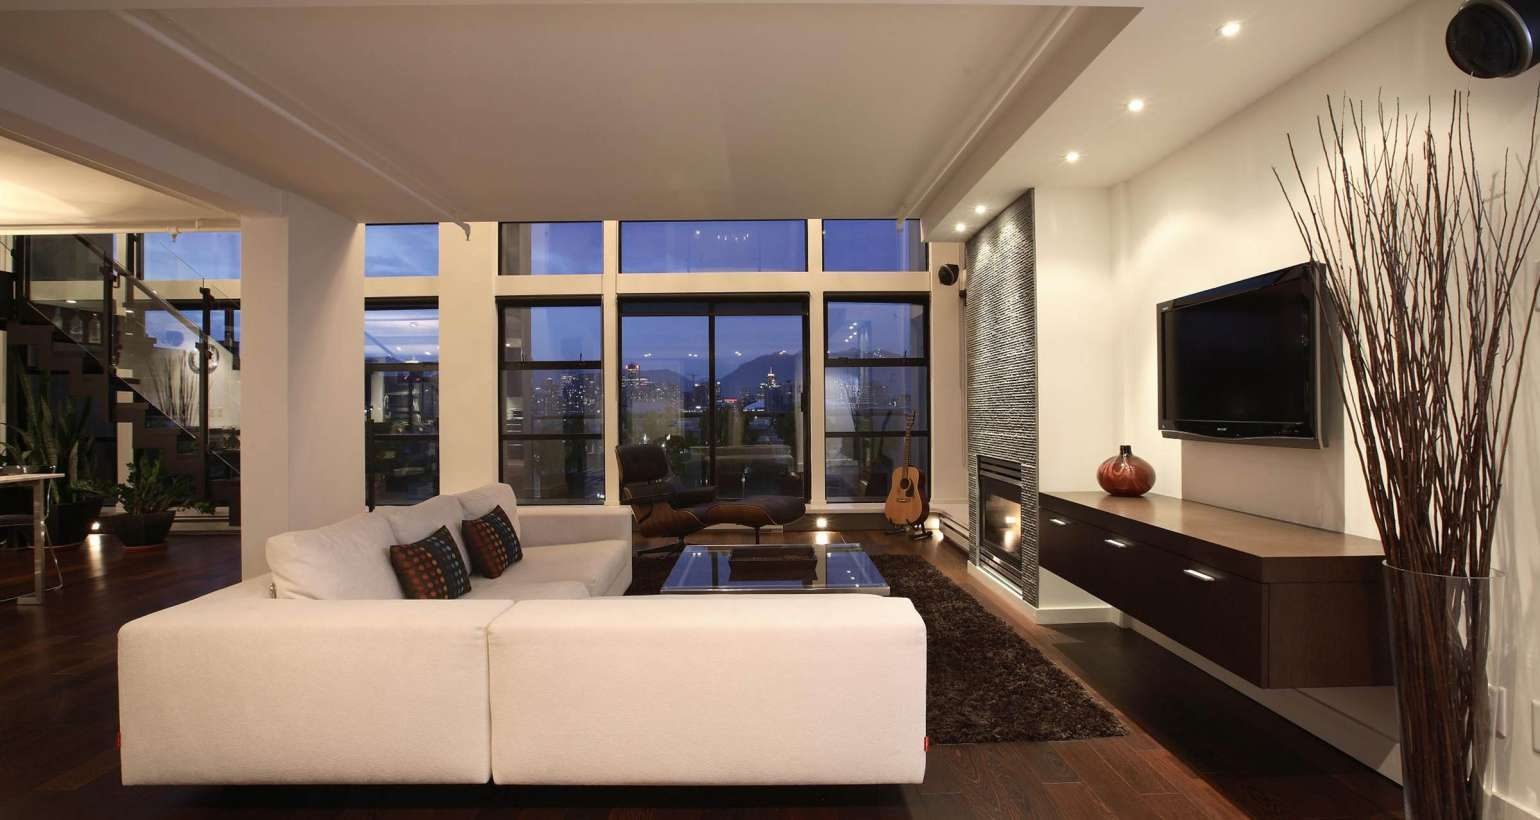 Types of Interior Paint Finishes Explained